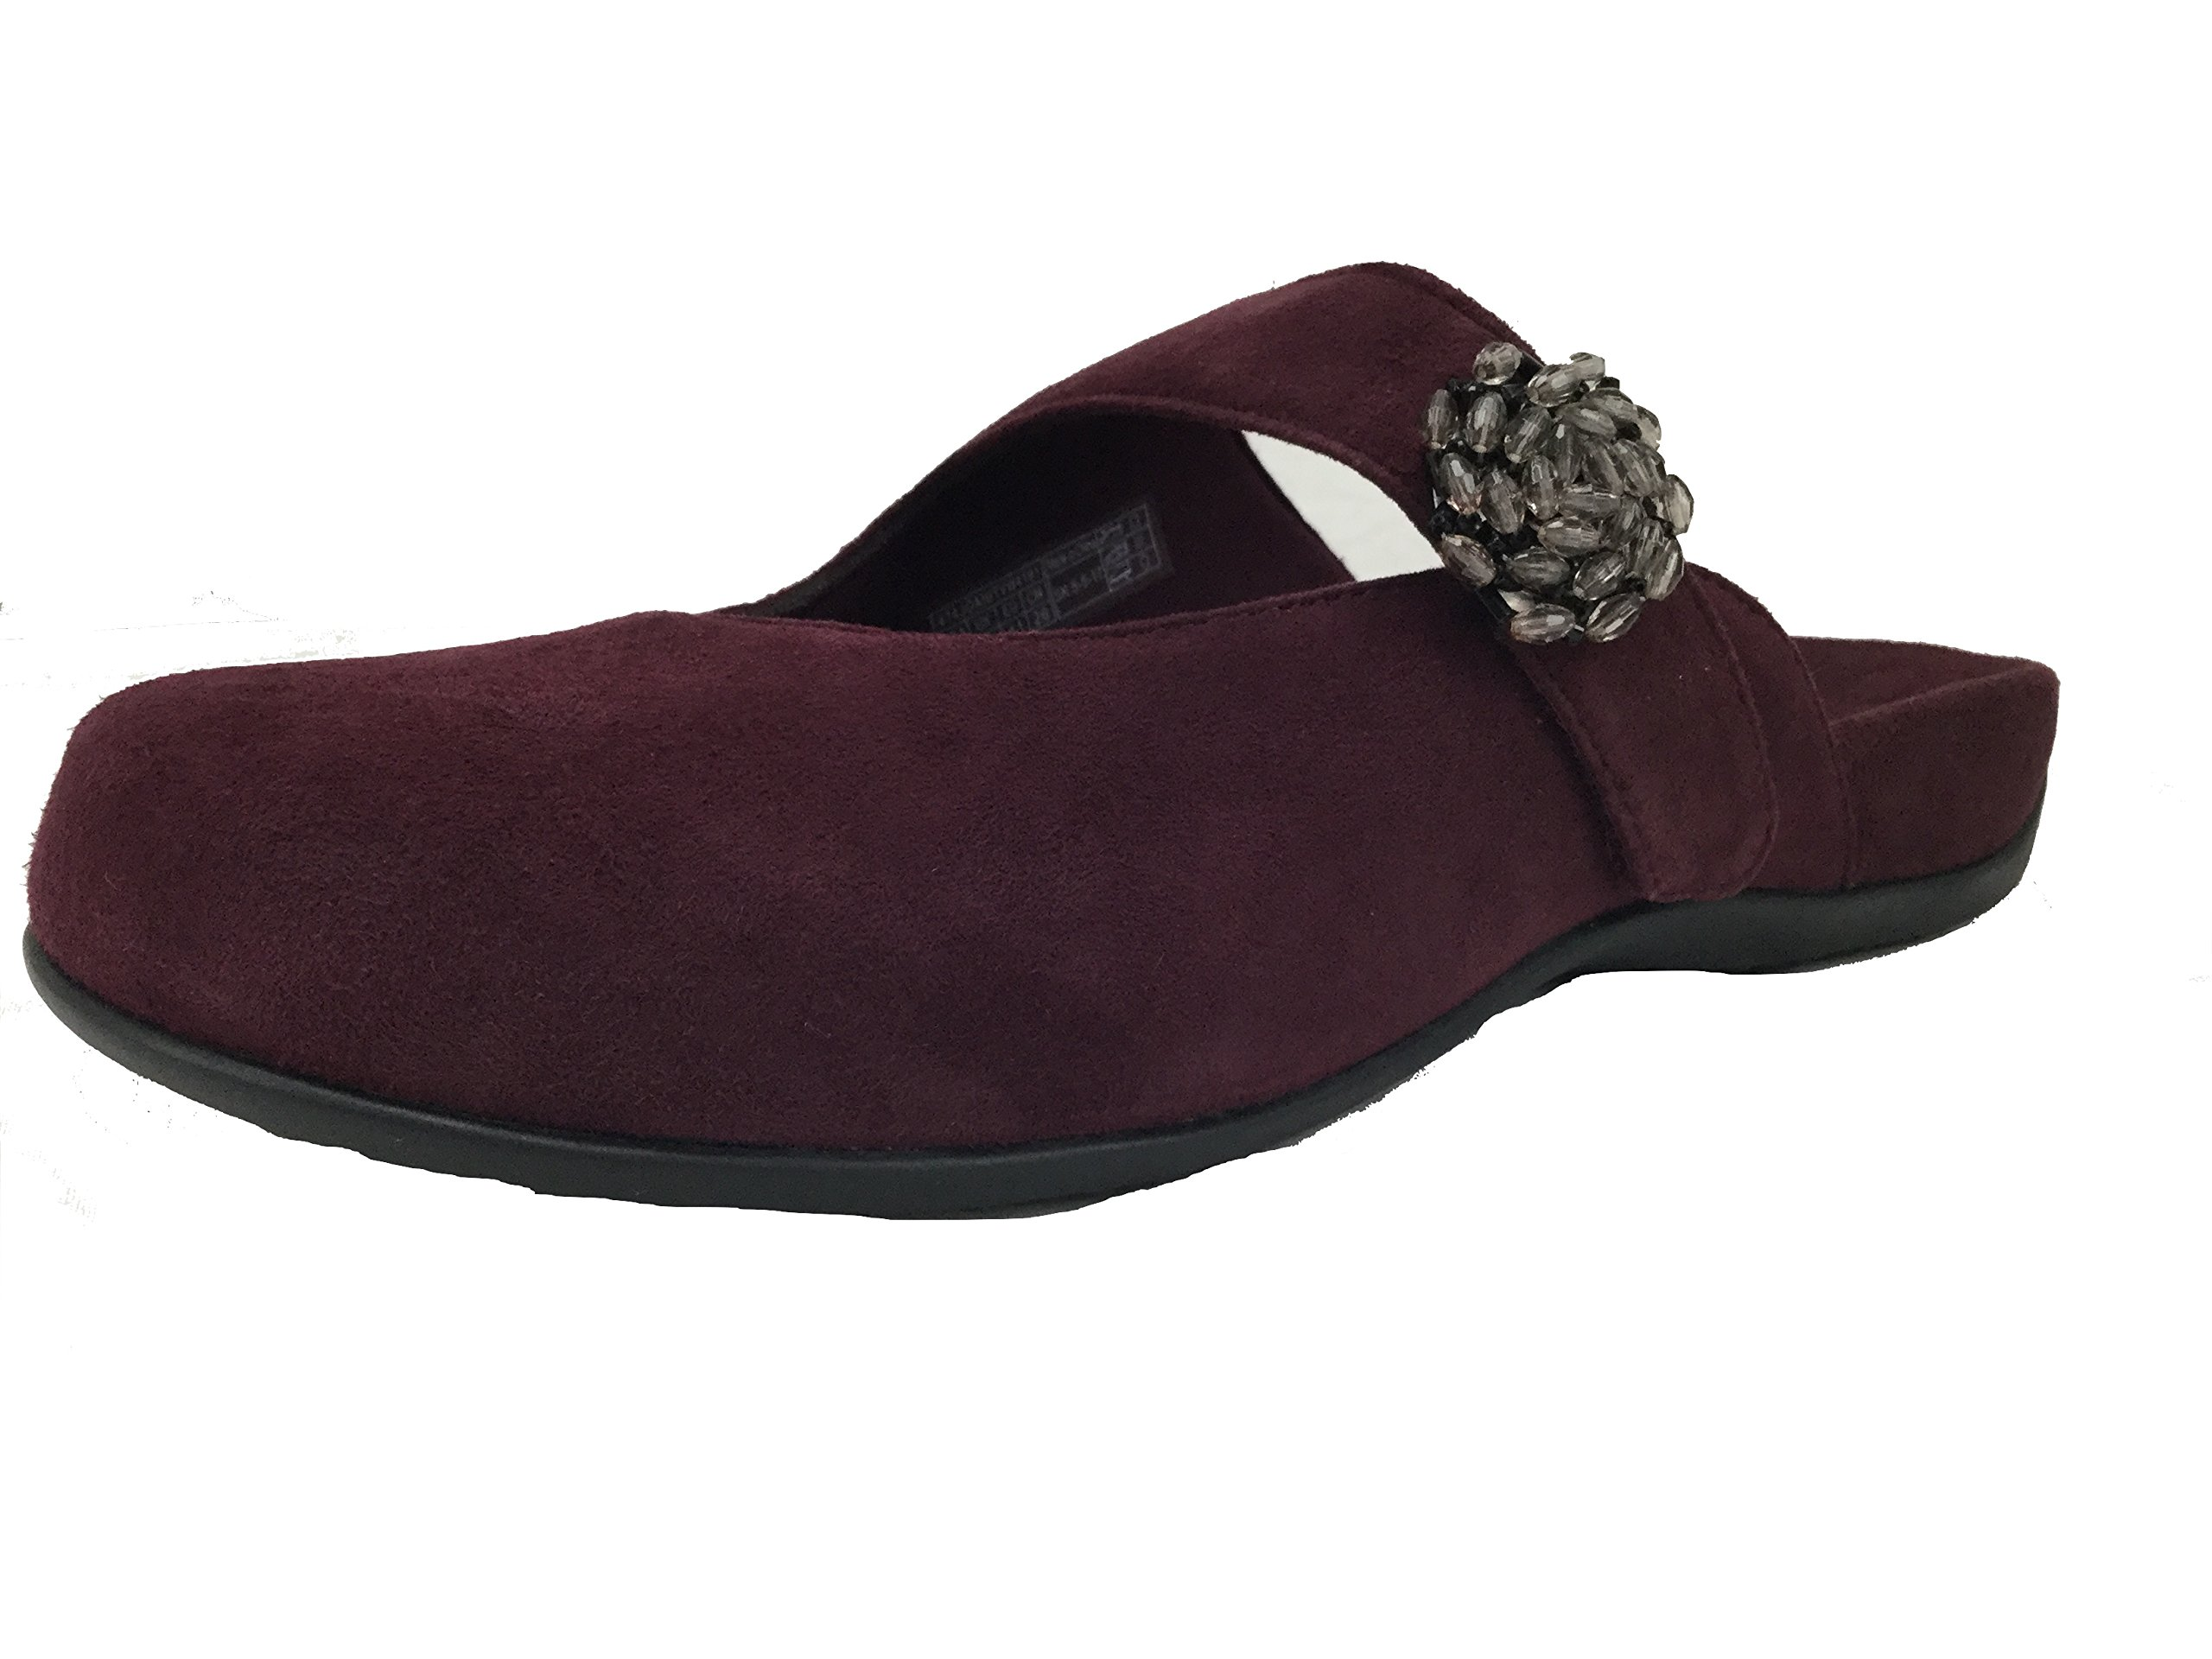 Vionic with Orthaheel Technology Womens Joan Mary Jane Mule Merlot Size 8